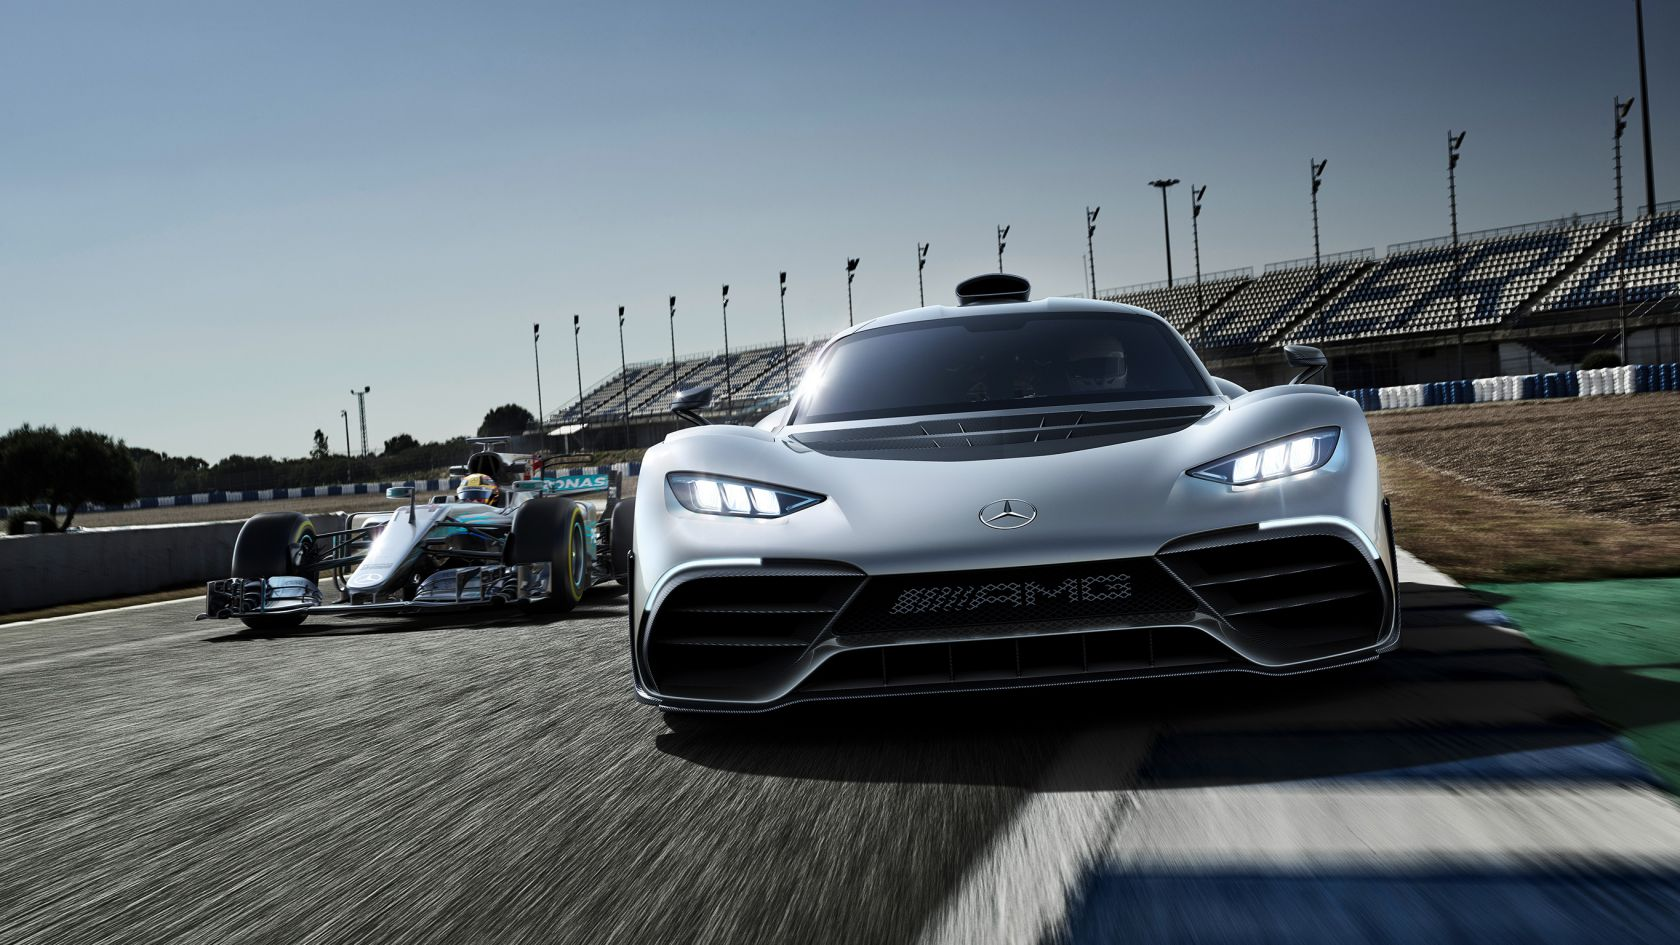 Michelin Pilot Sport Cup 2 Connect Cup AMG Project One